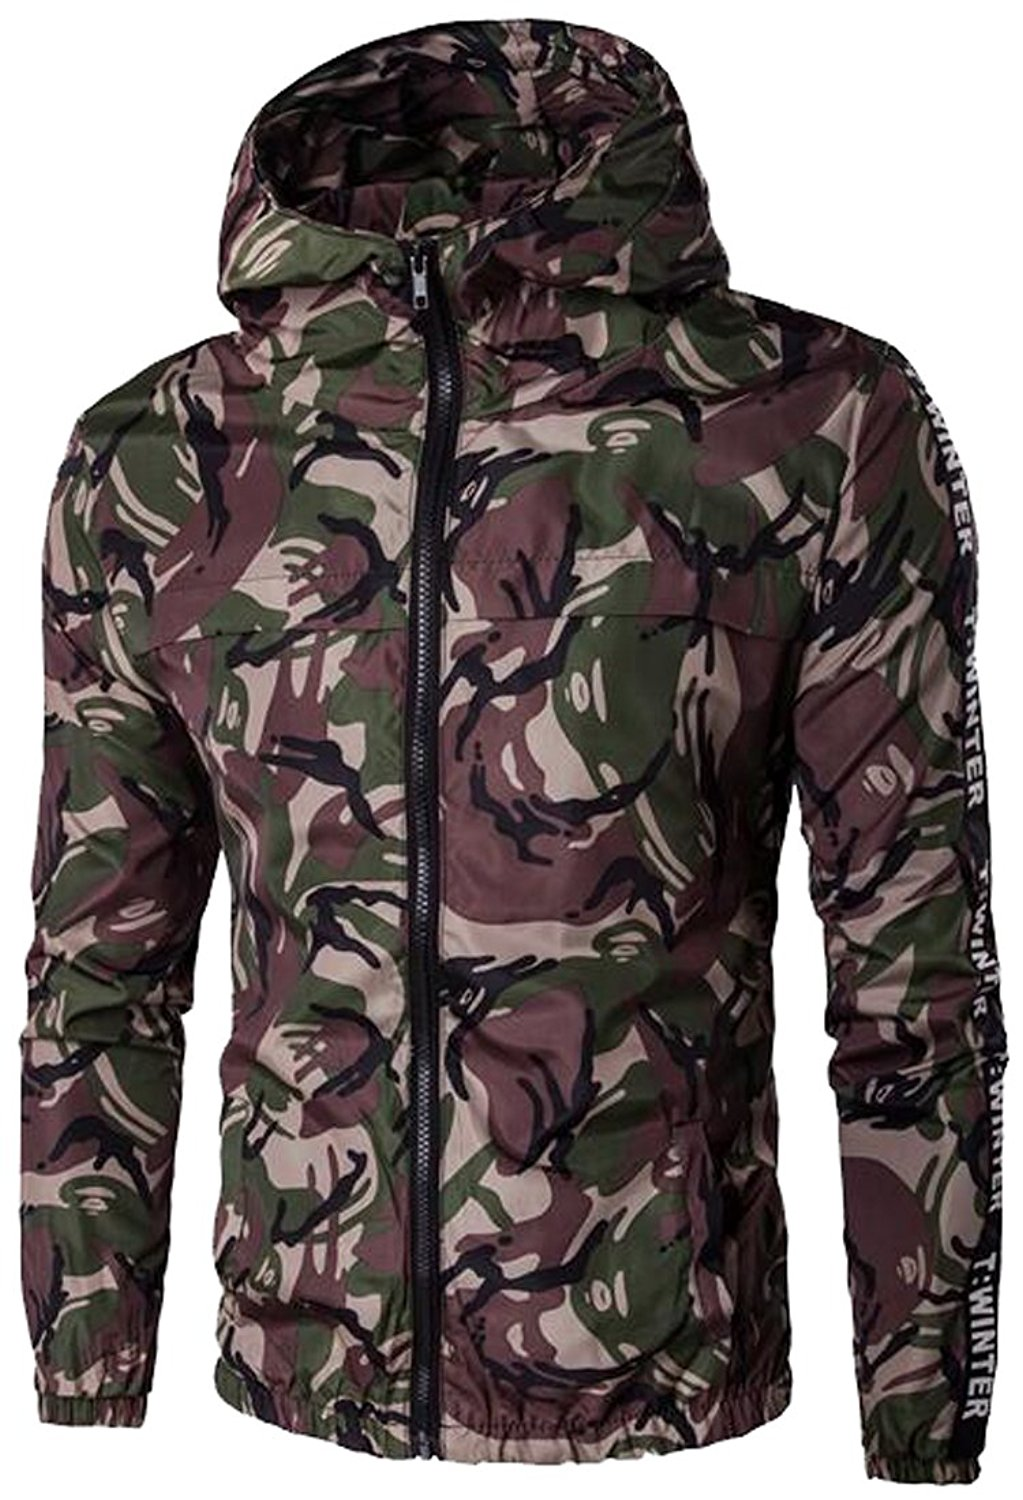 Oberora Men's Camouflage Hoodie Military Jacket Zip-Up Coat